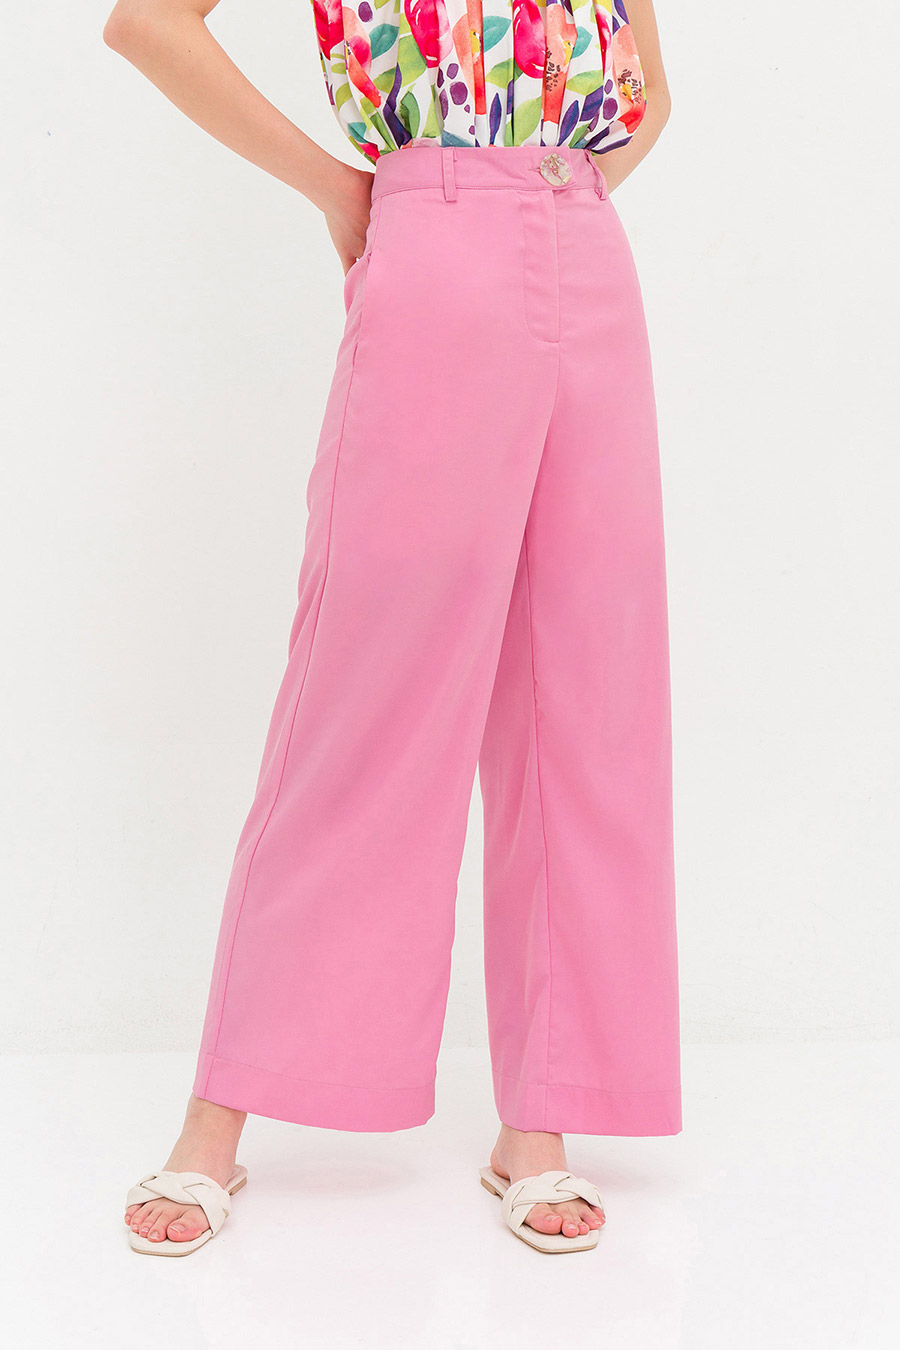 NORMAN PANTS - BUBBLEGUM [BY MODPARADE]